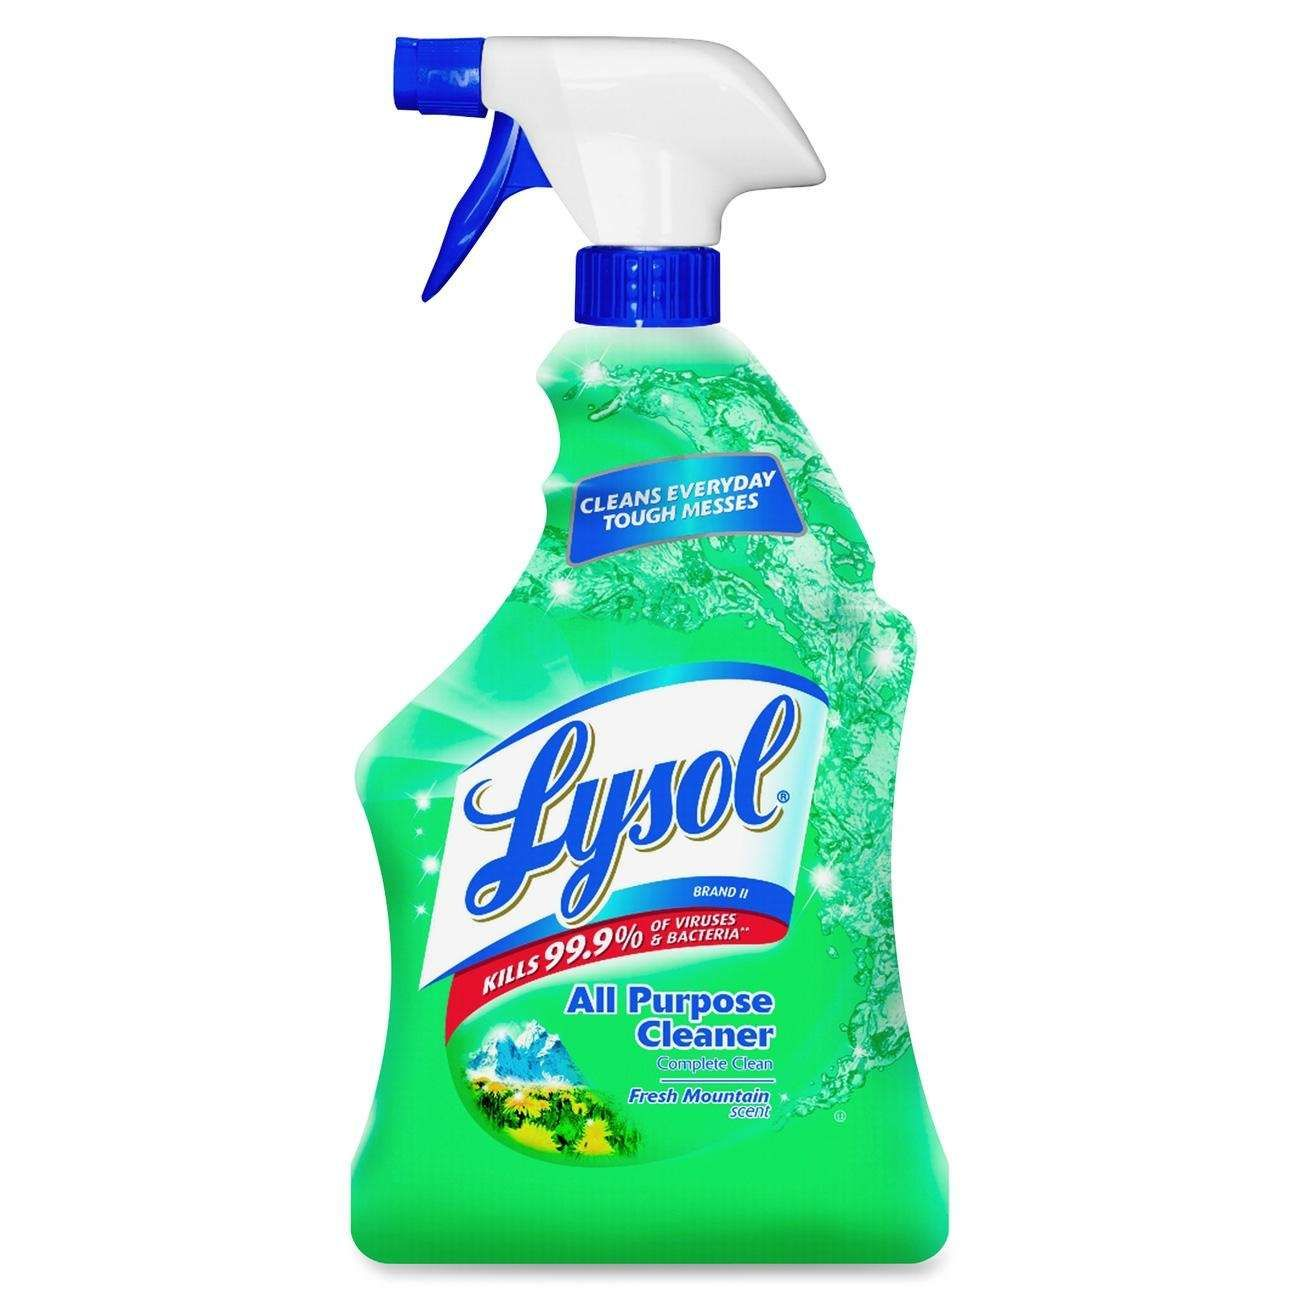 Germs will not stand a chance with Lysol on duty. All